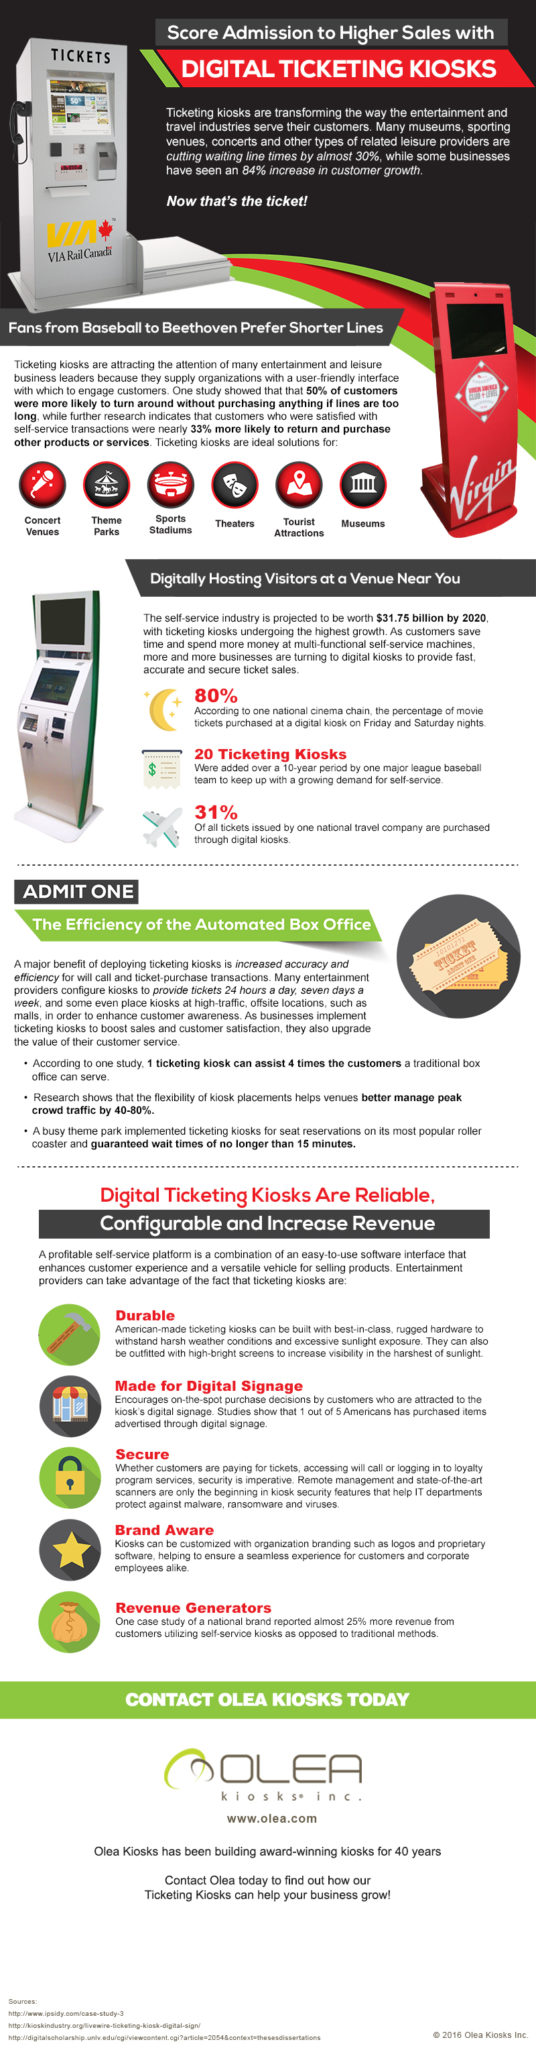 Ticketing Kiosks - The Key to Shorter Lines and More Revenue